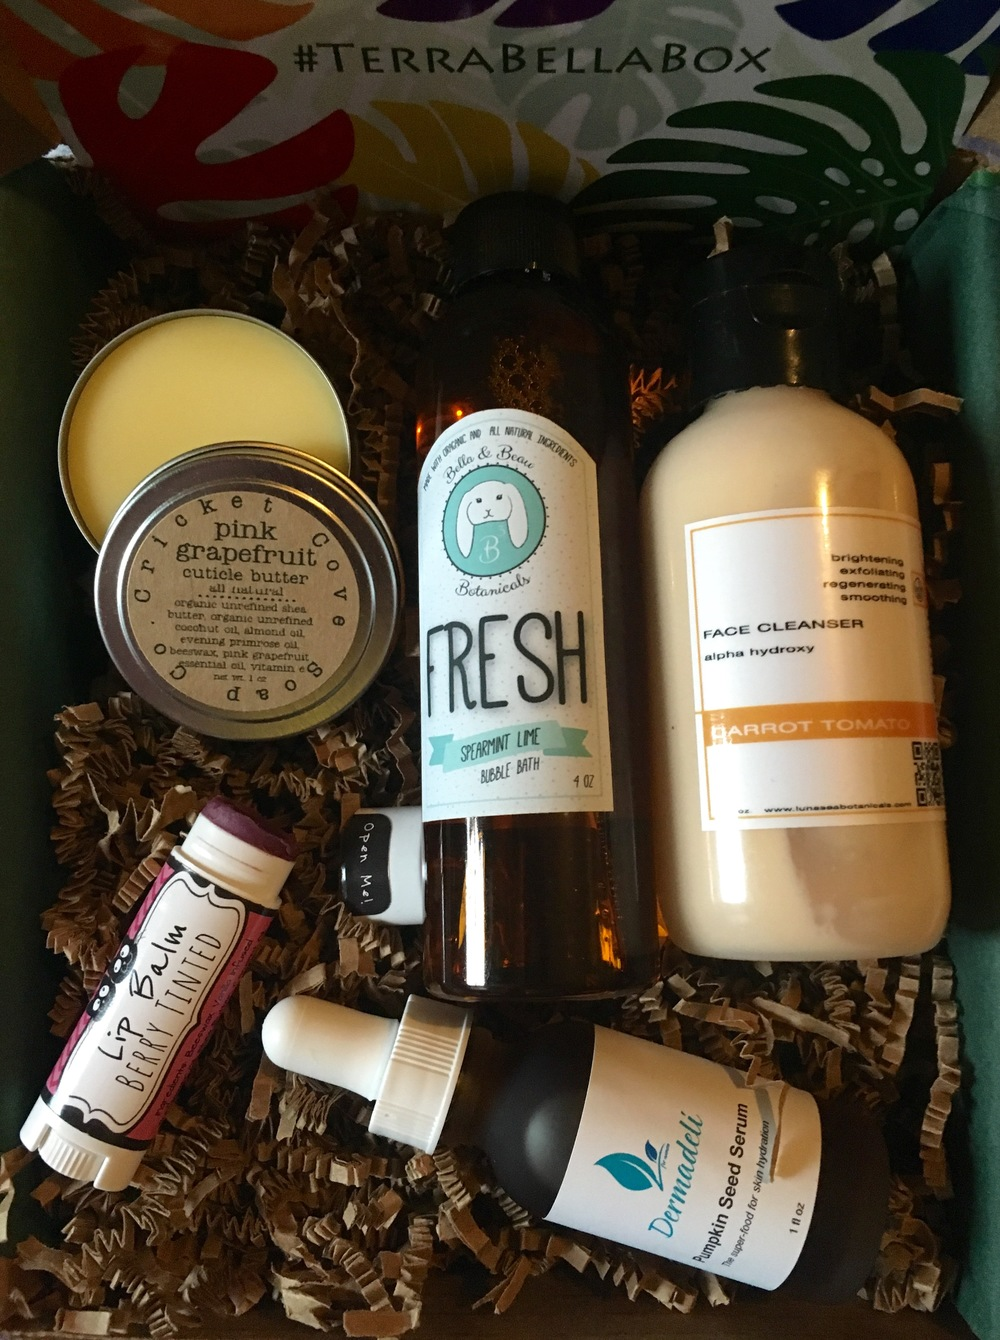 Terra Bella Box, March 2016